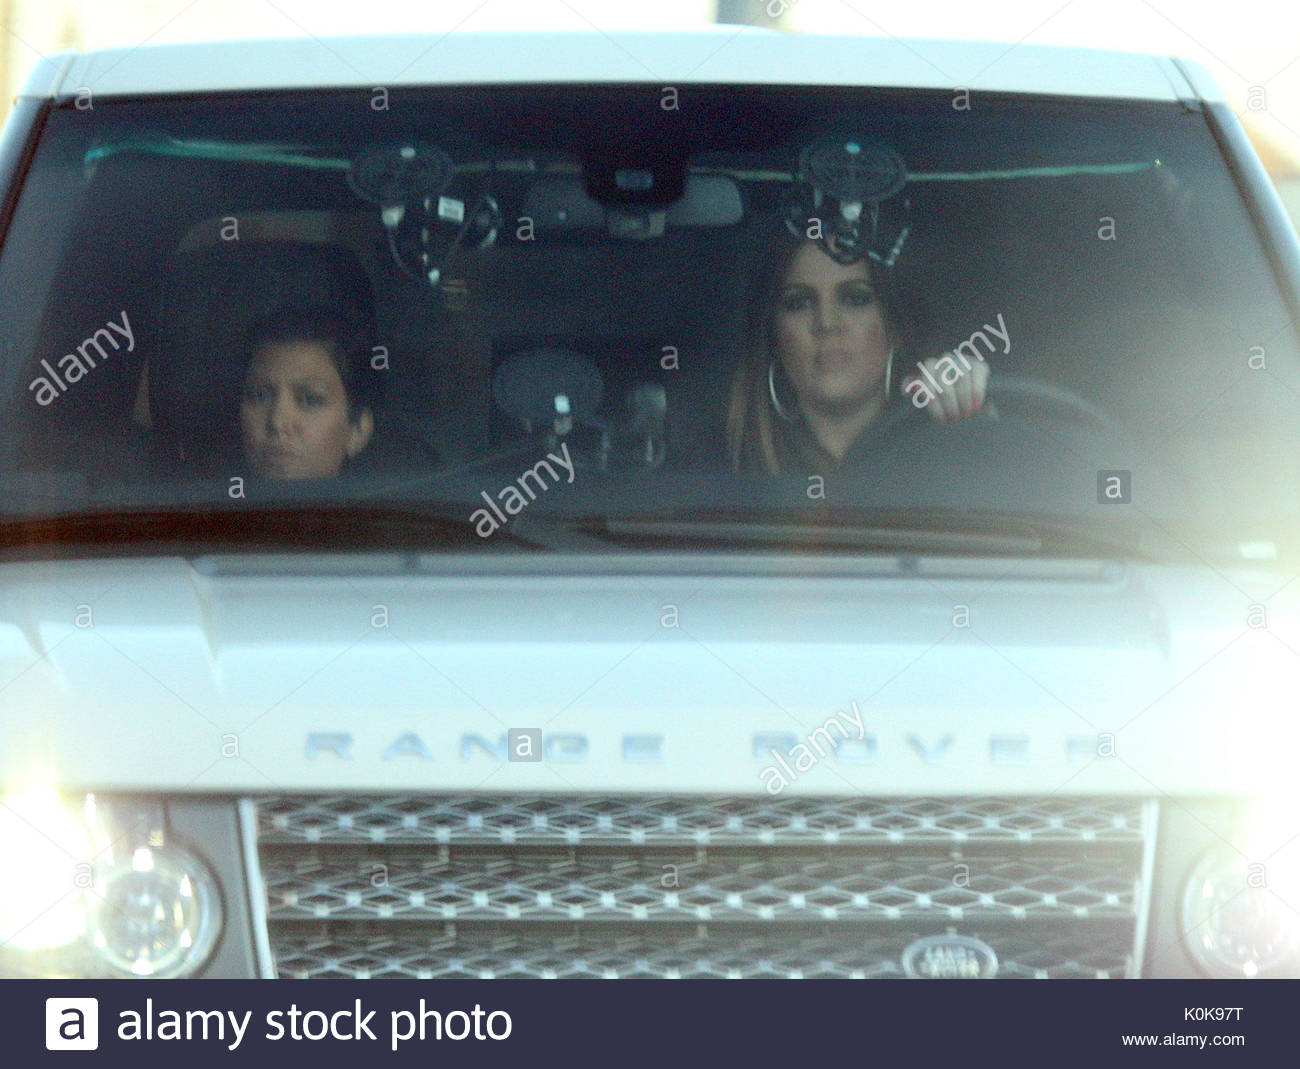 Khloe Kardashian and Kourtney Kardashian Khloe Kardashian shows off